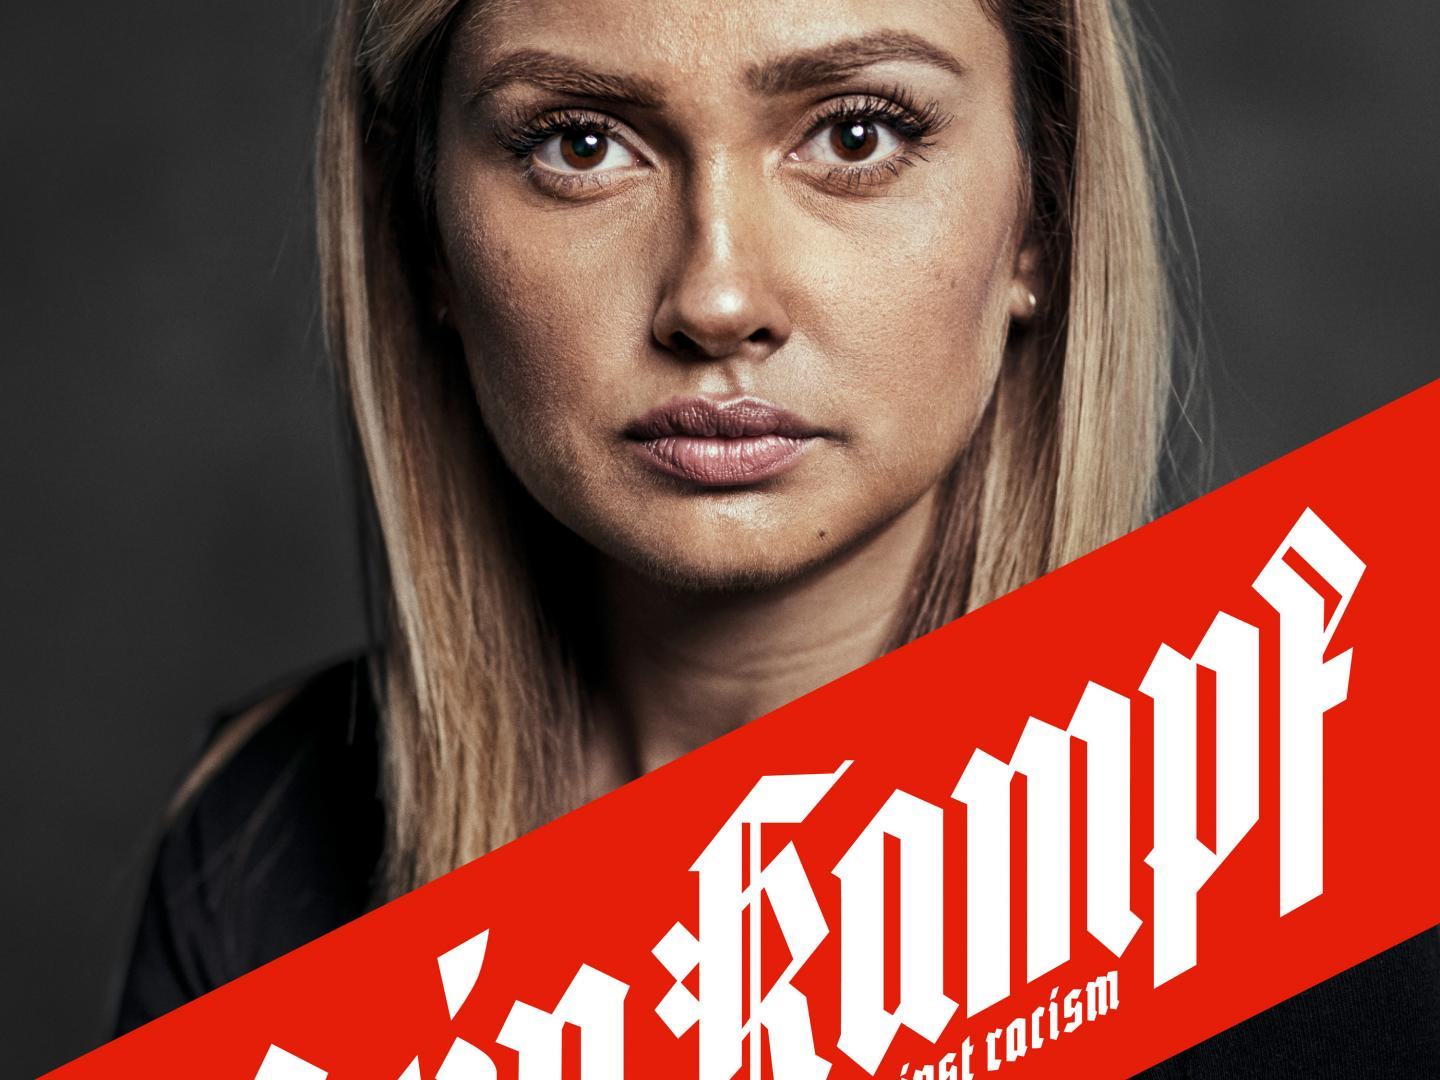 Image for Mein Kampf – against racism/ Print Ad:  Wana Limar